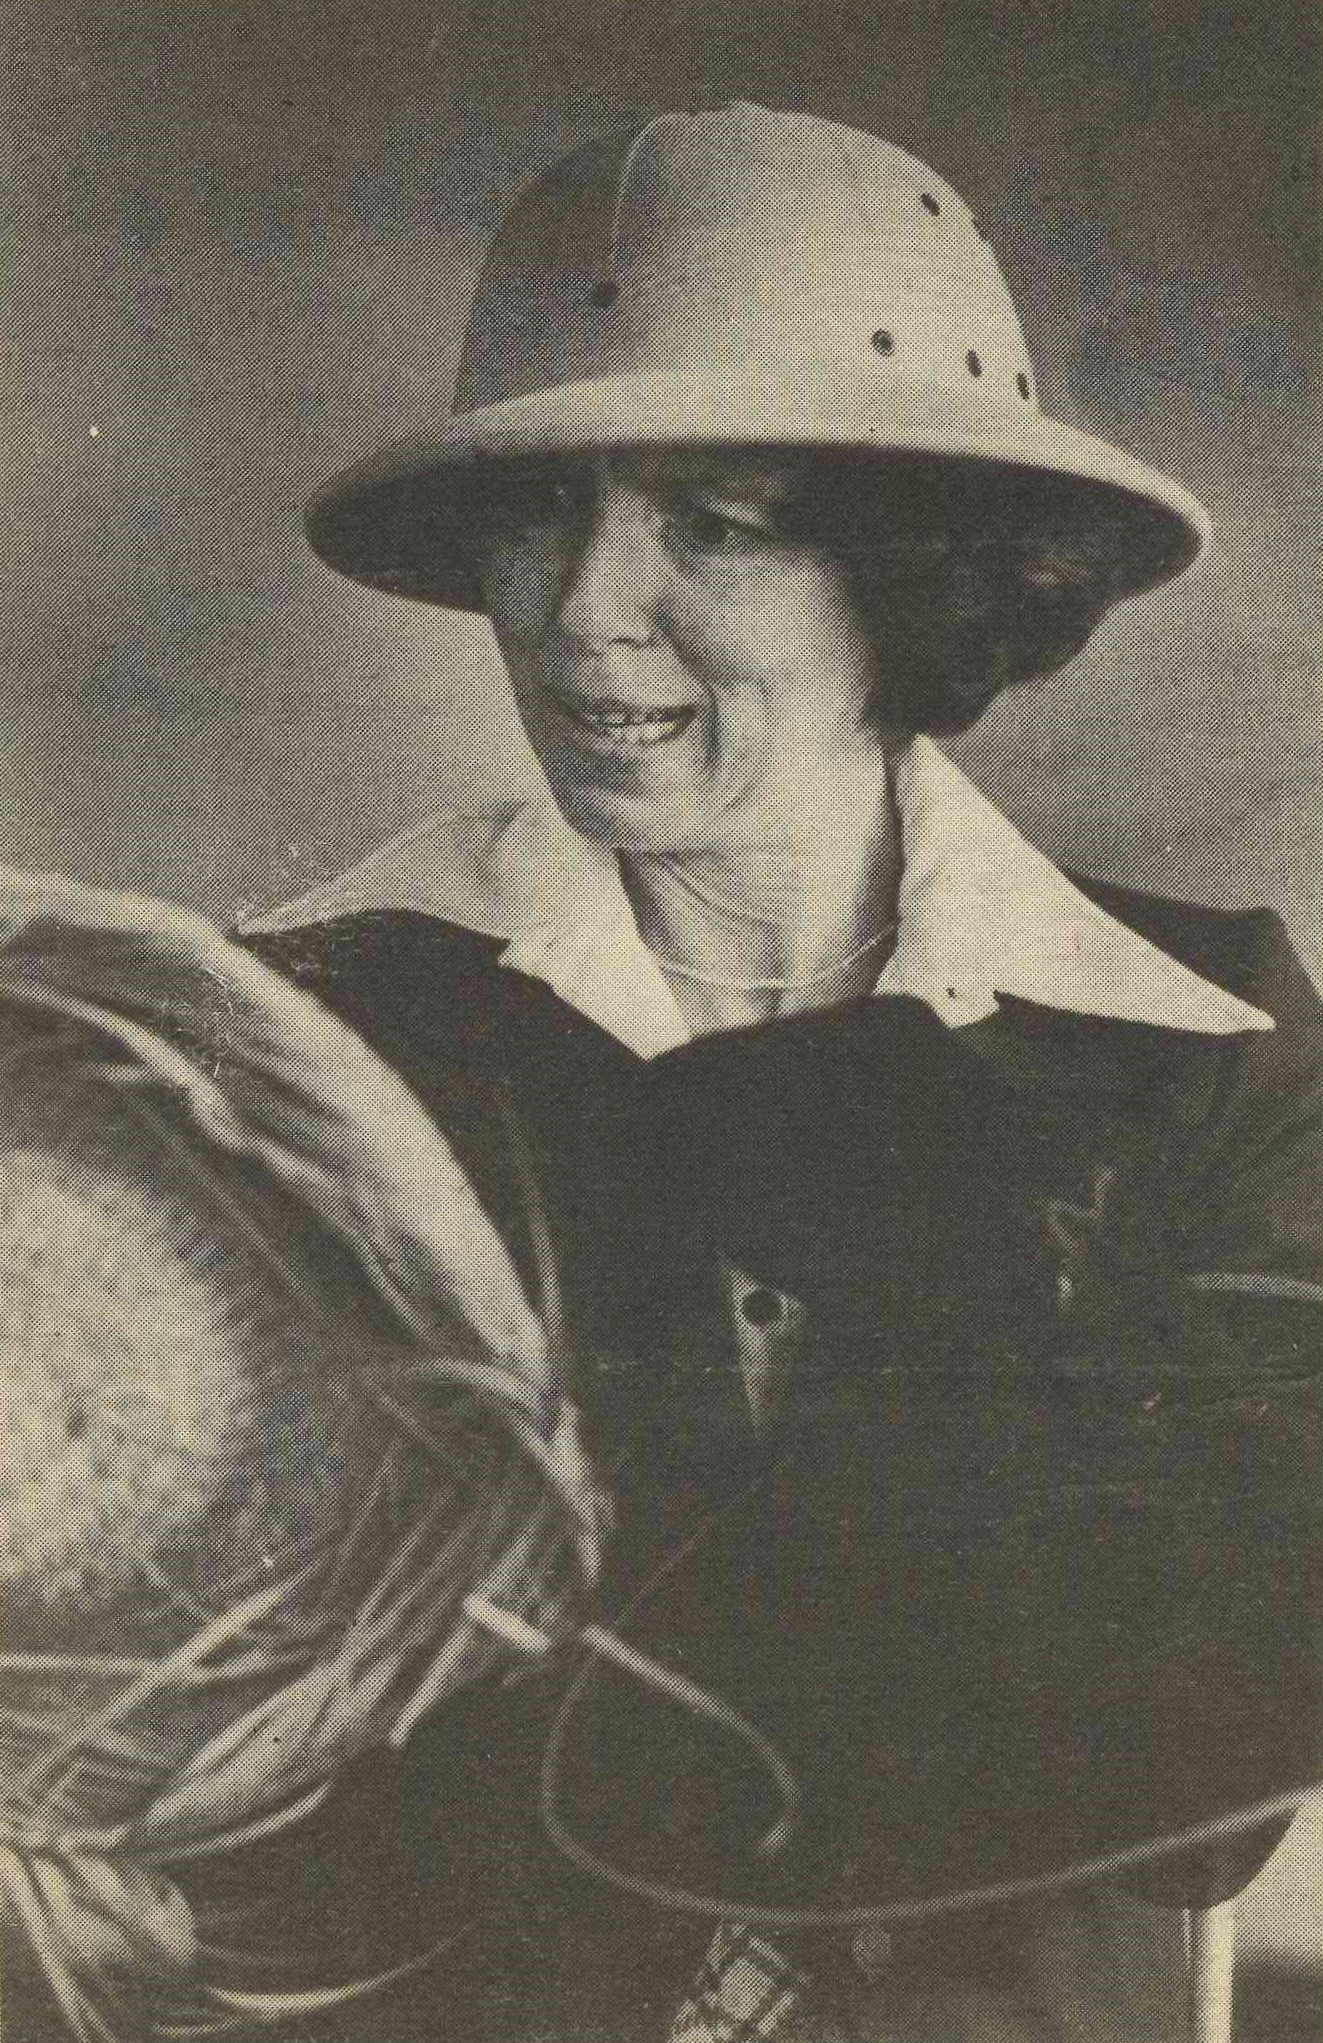 Black and white photo of Toddy wearing an explorer's hat and holding other hats.